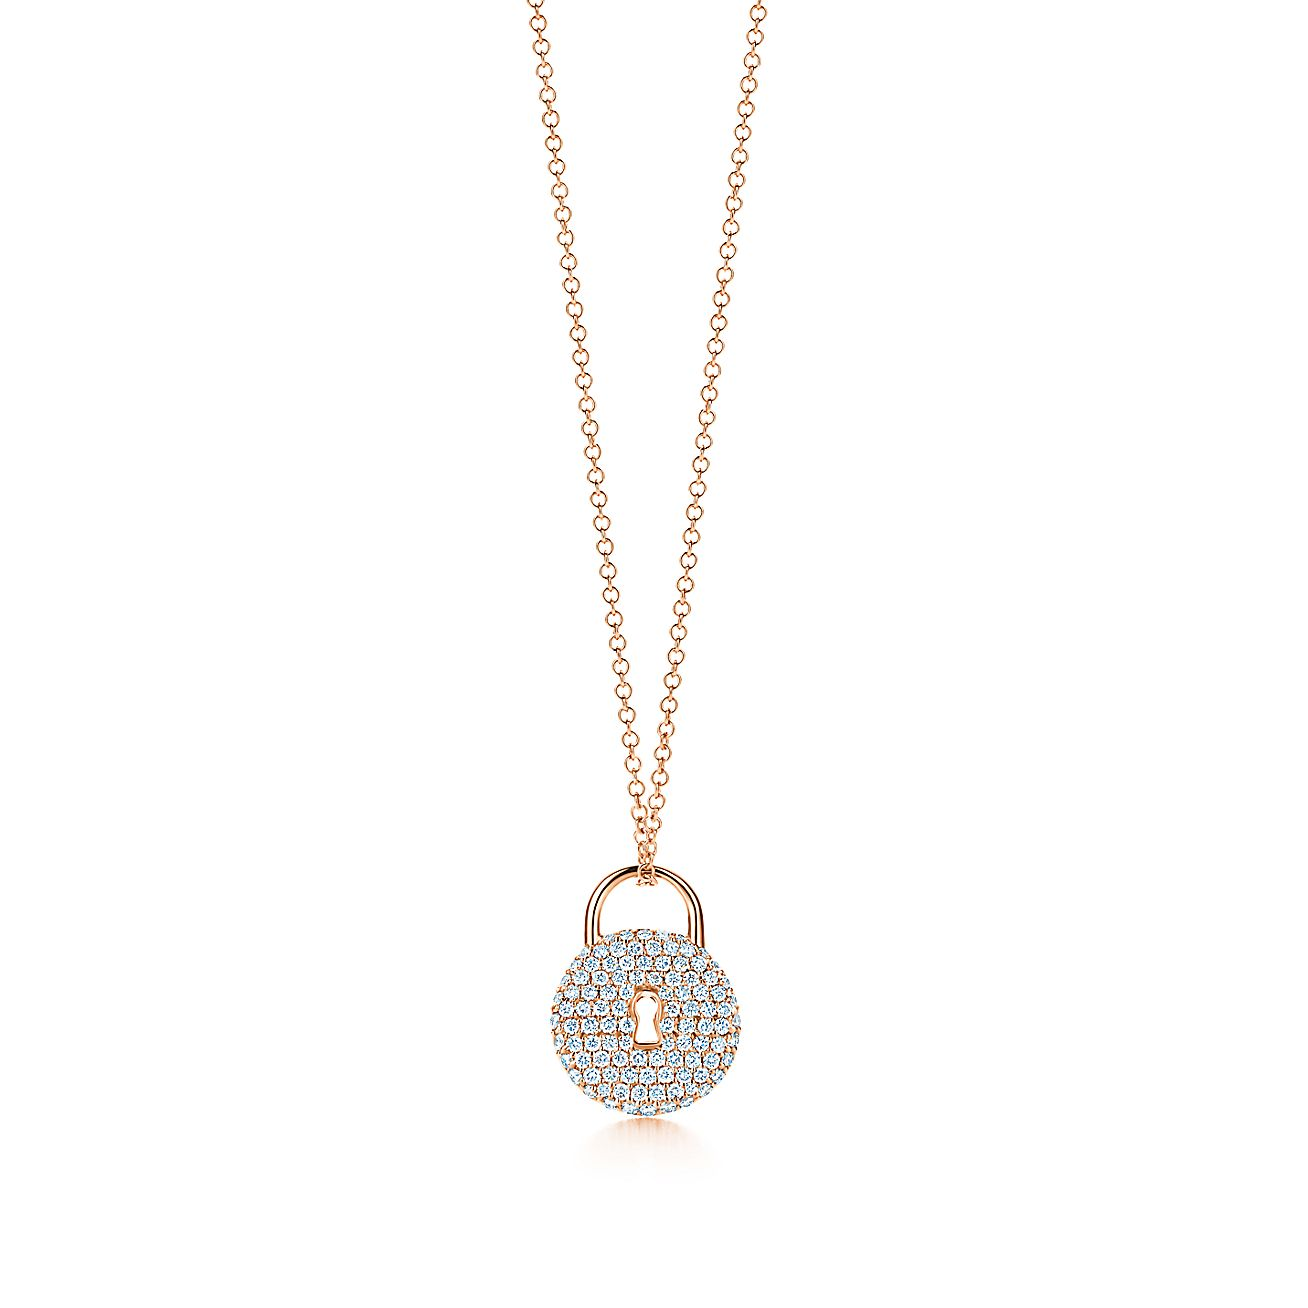 Tiffany Locks:Round Lock Pendant